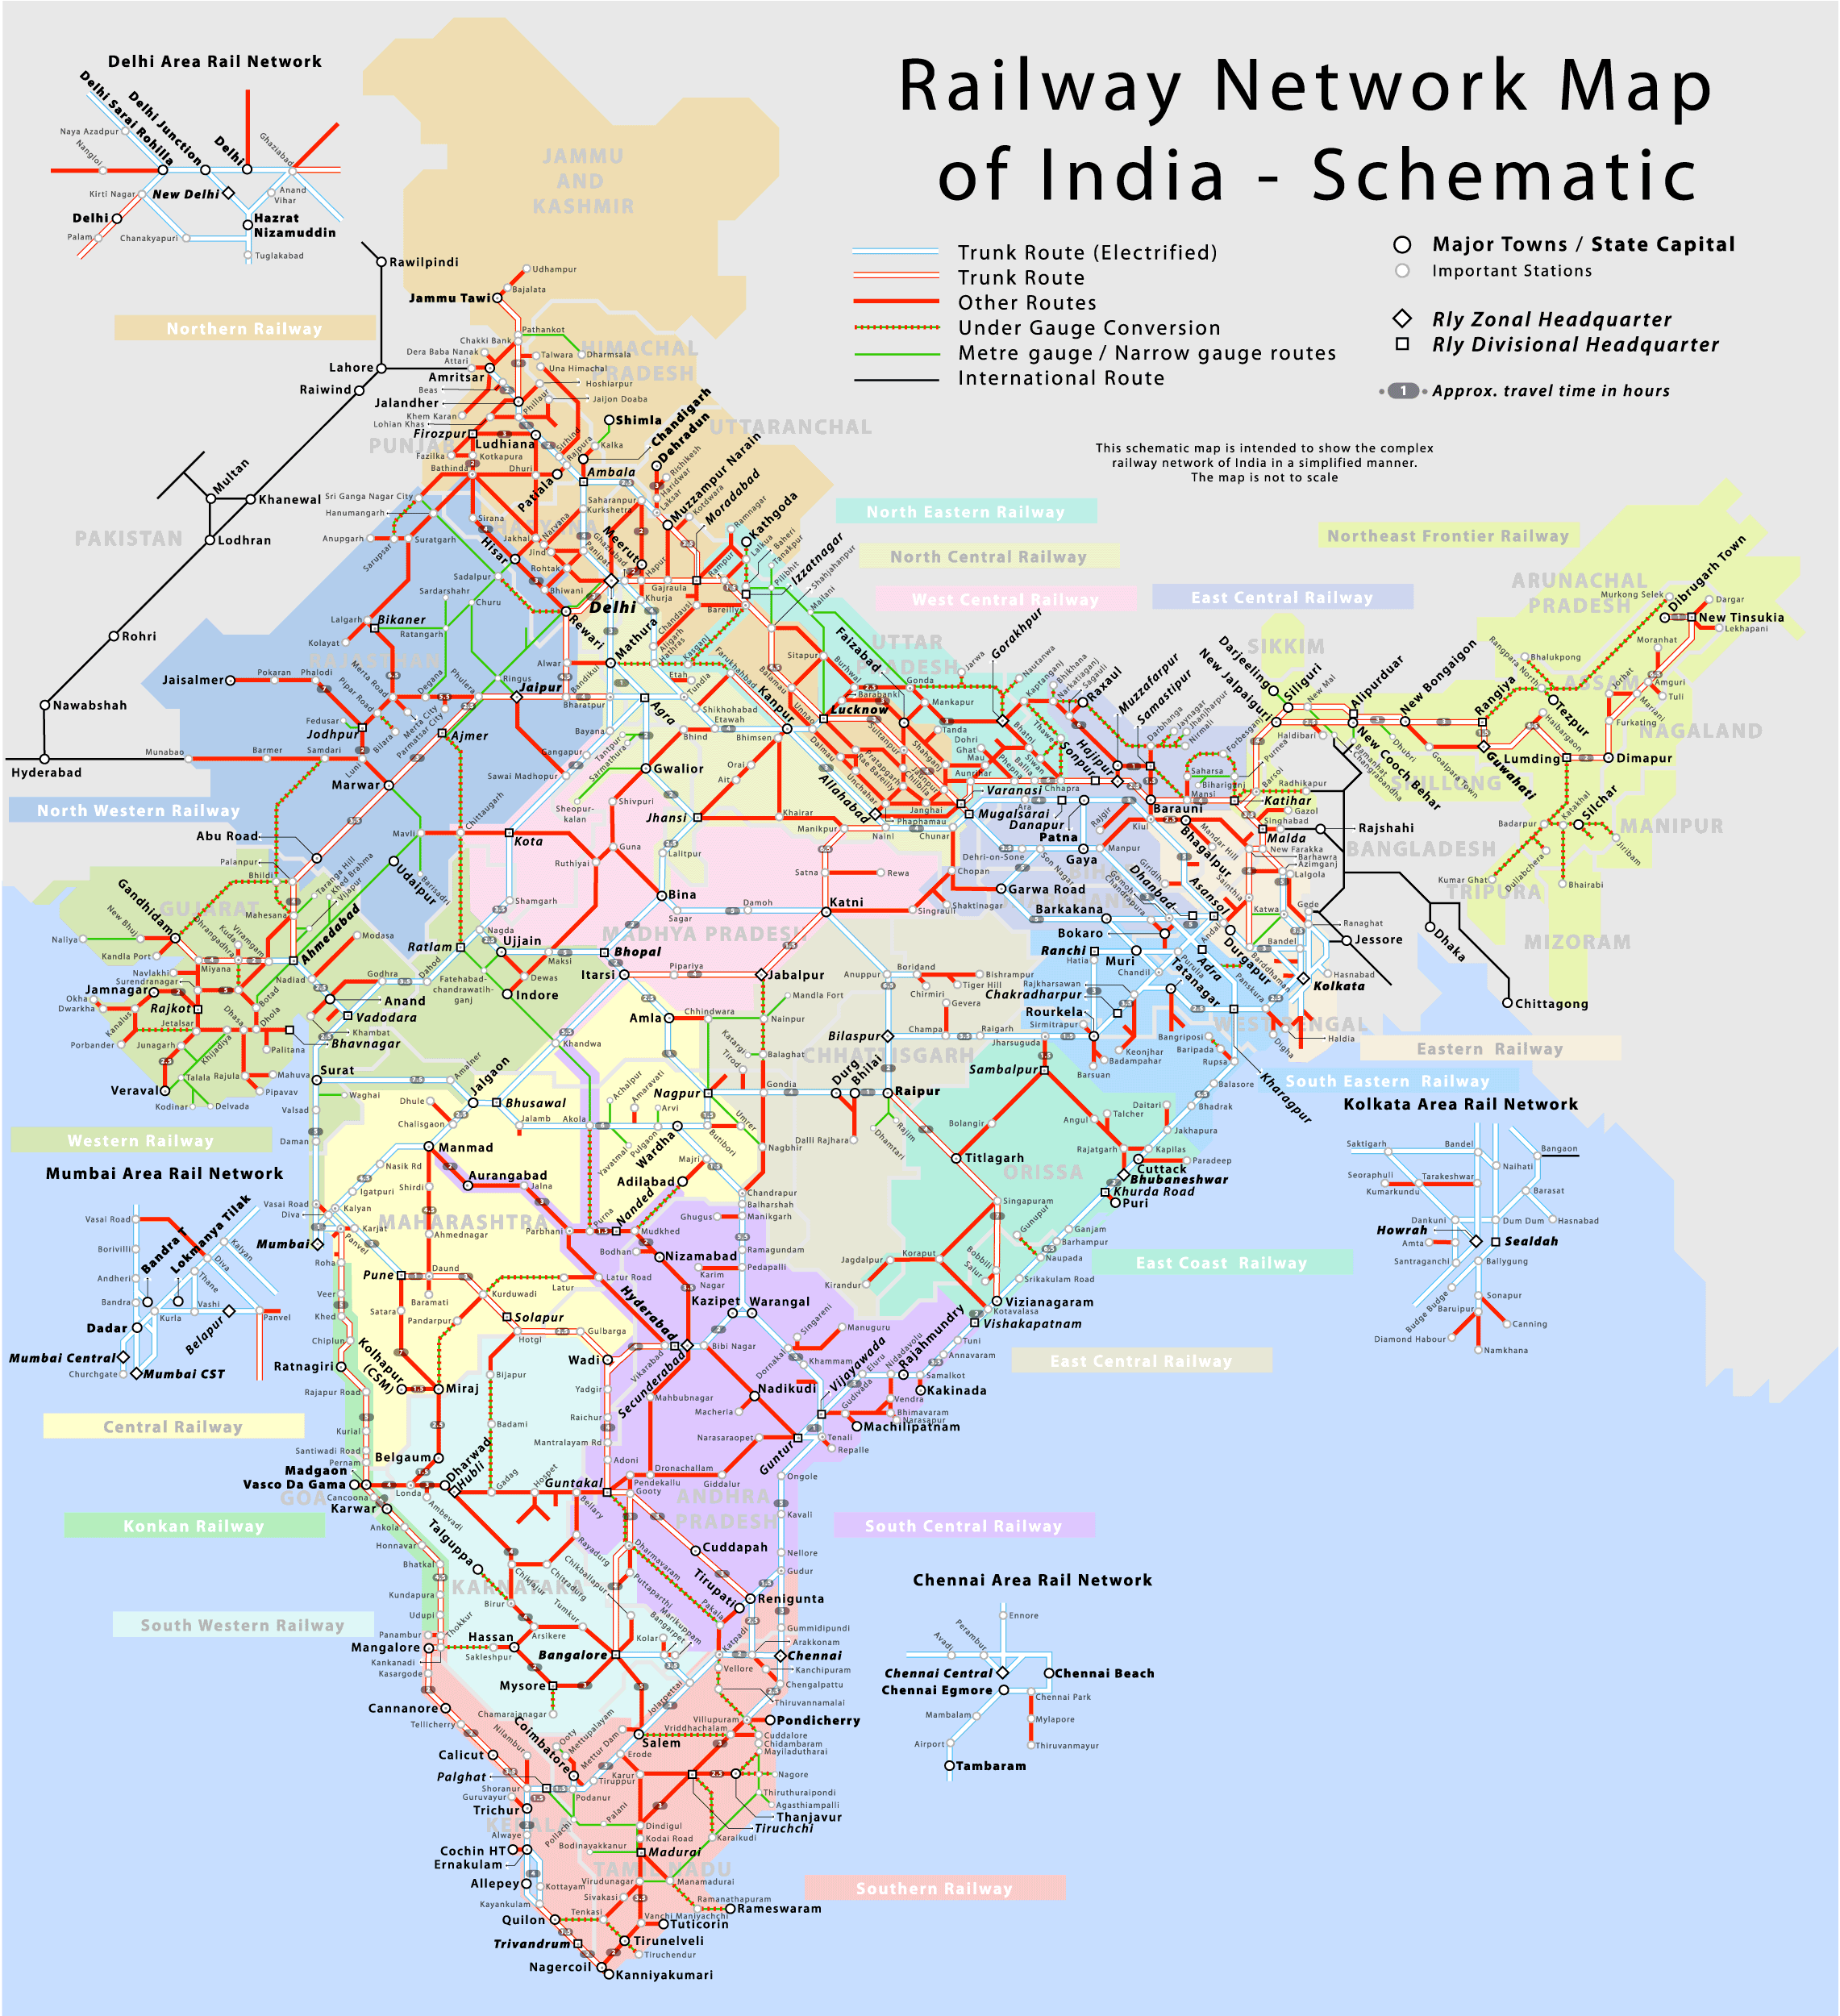 full size india map train route File Railway Network Map Of India Schematic Png Wikimedia Commons full size india map train route